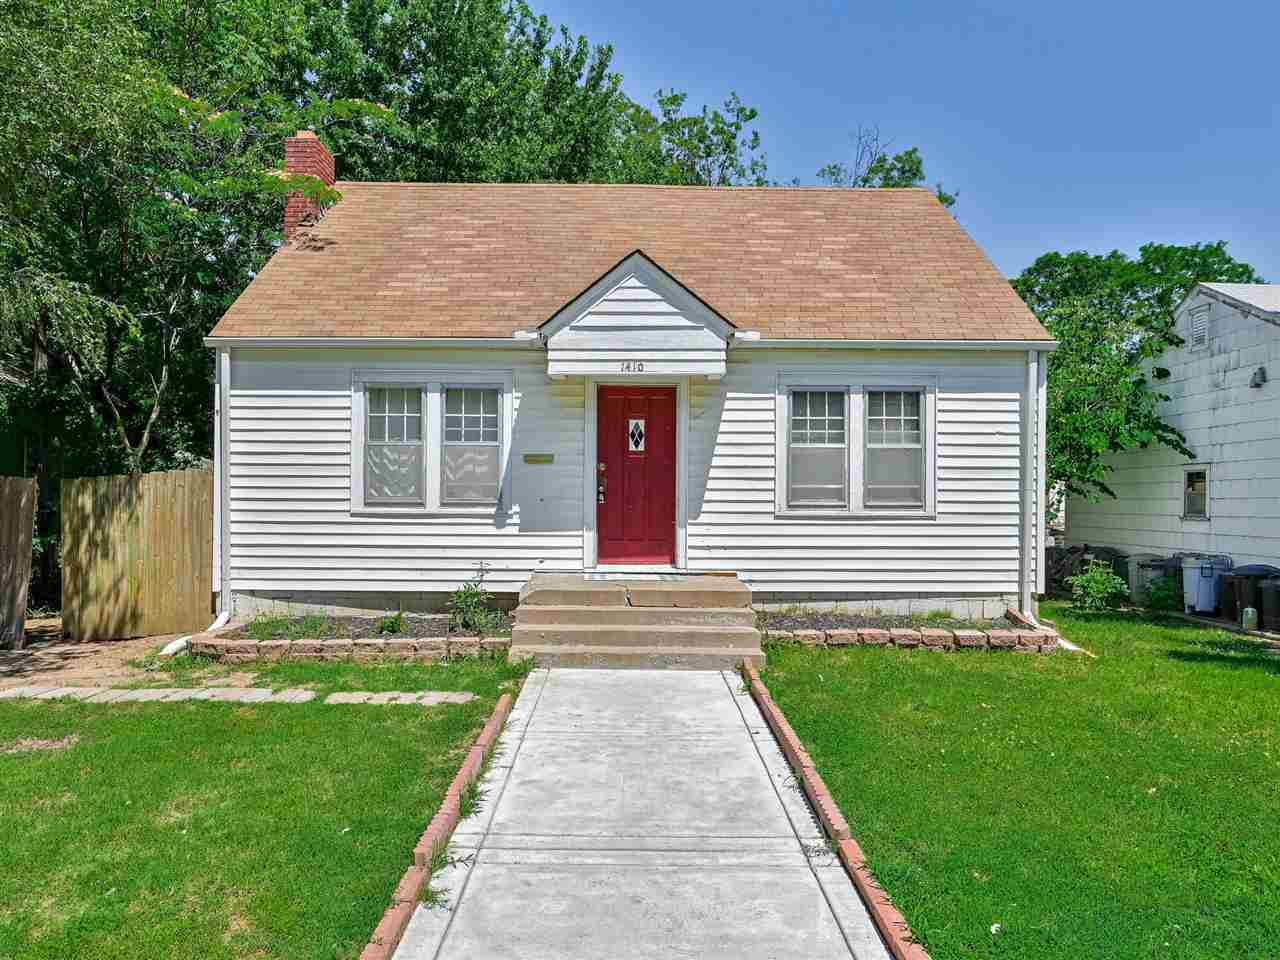 2 bedroom, 1 bath ranch home. The interior has been updated with laminate flooring throughout. The b